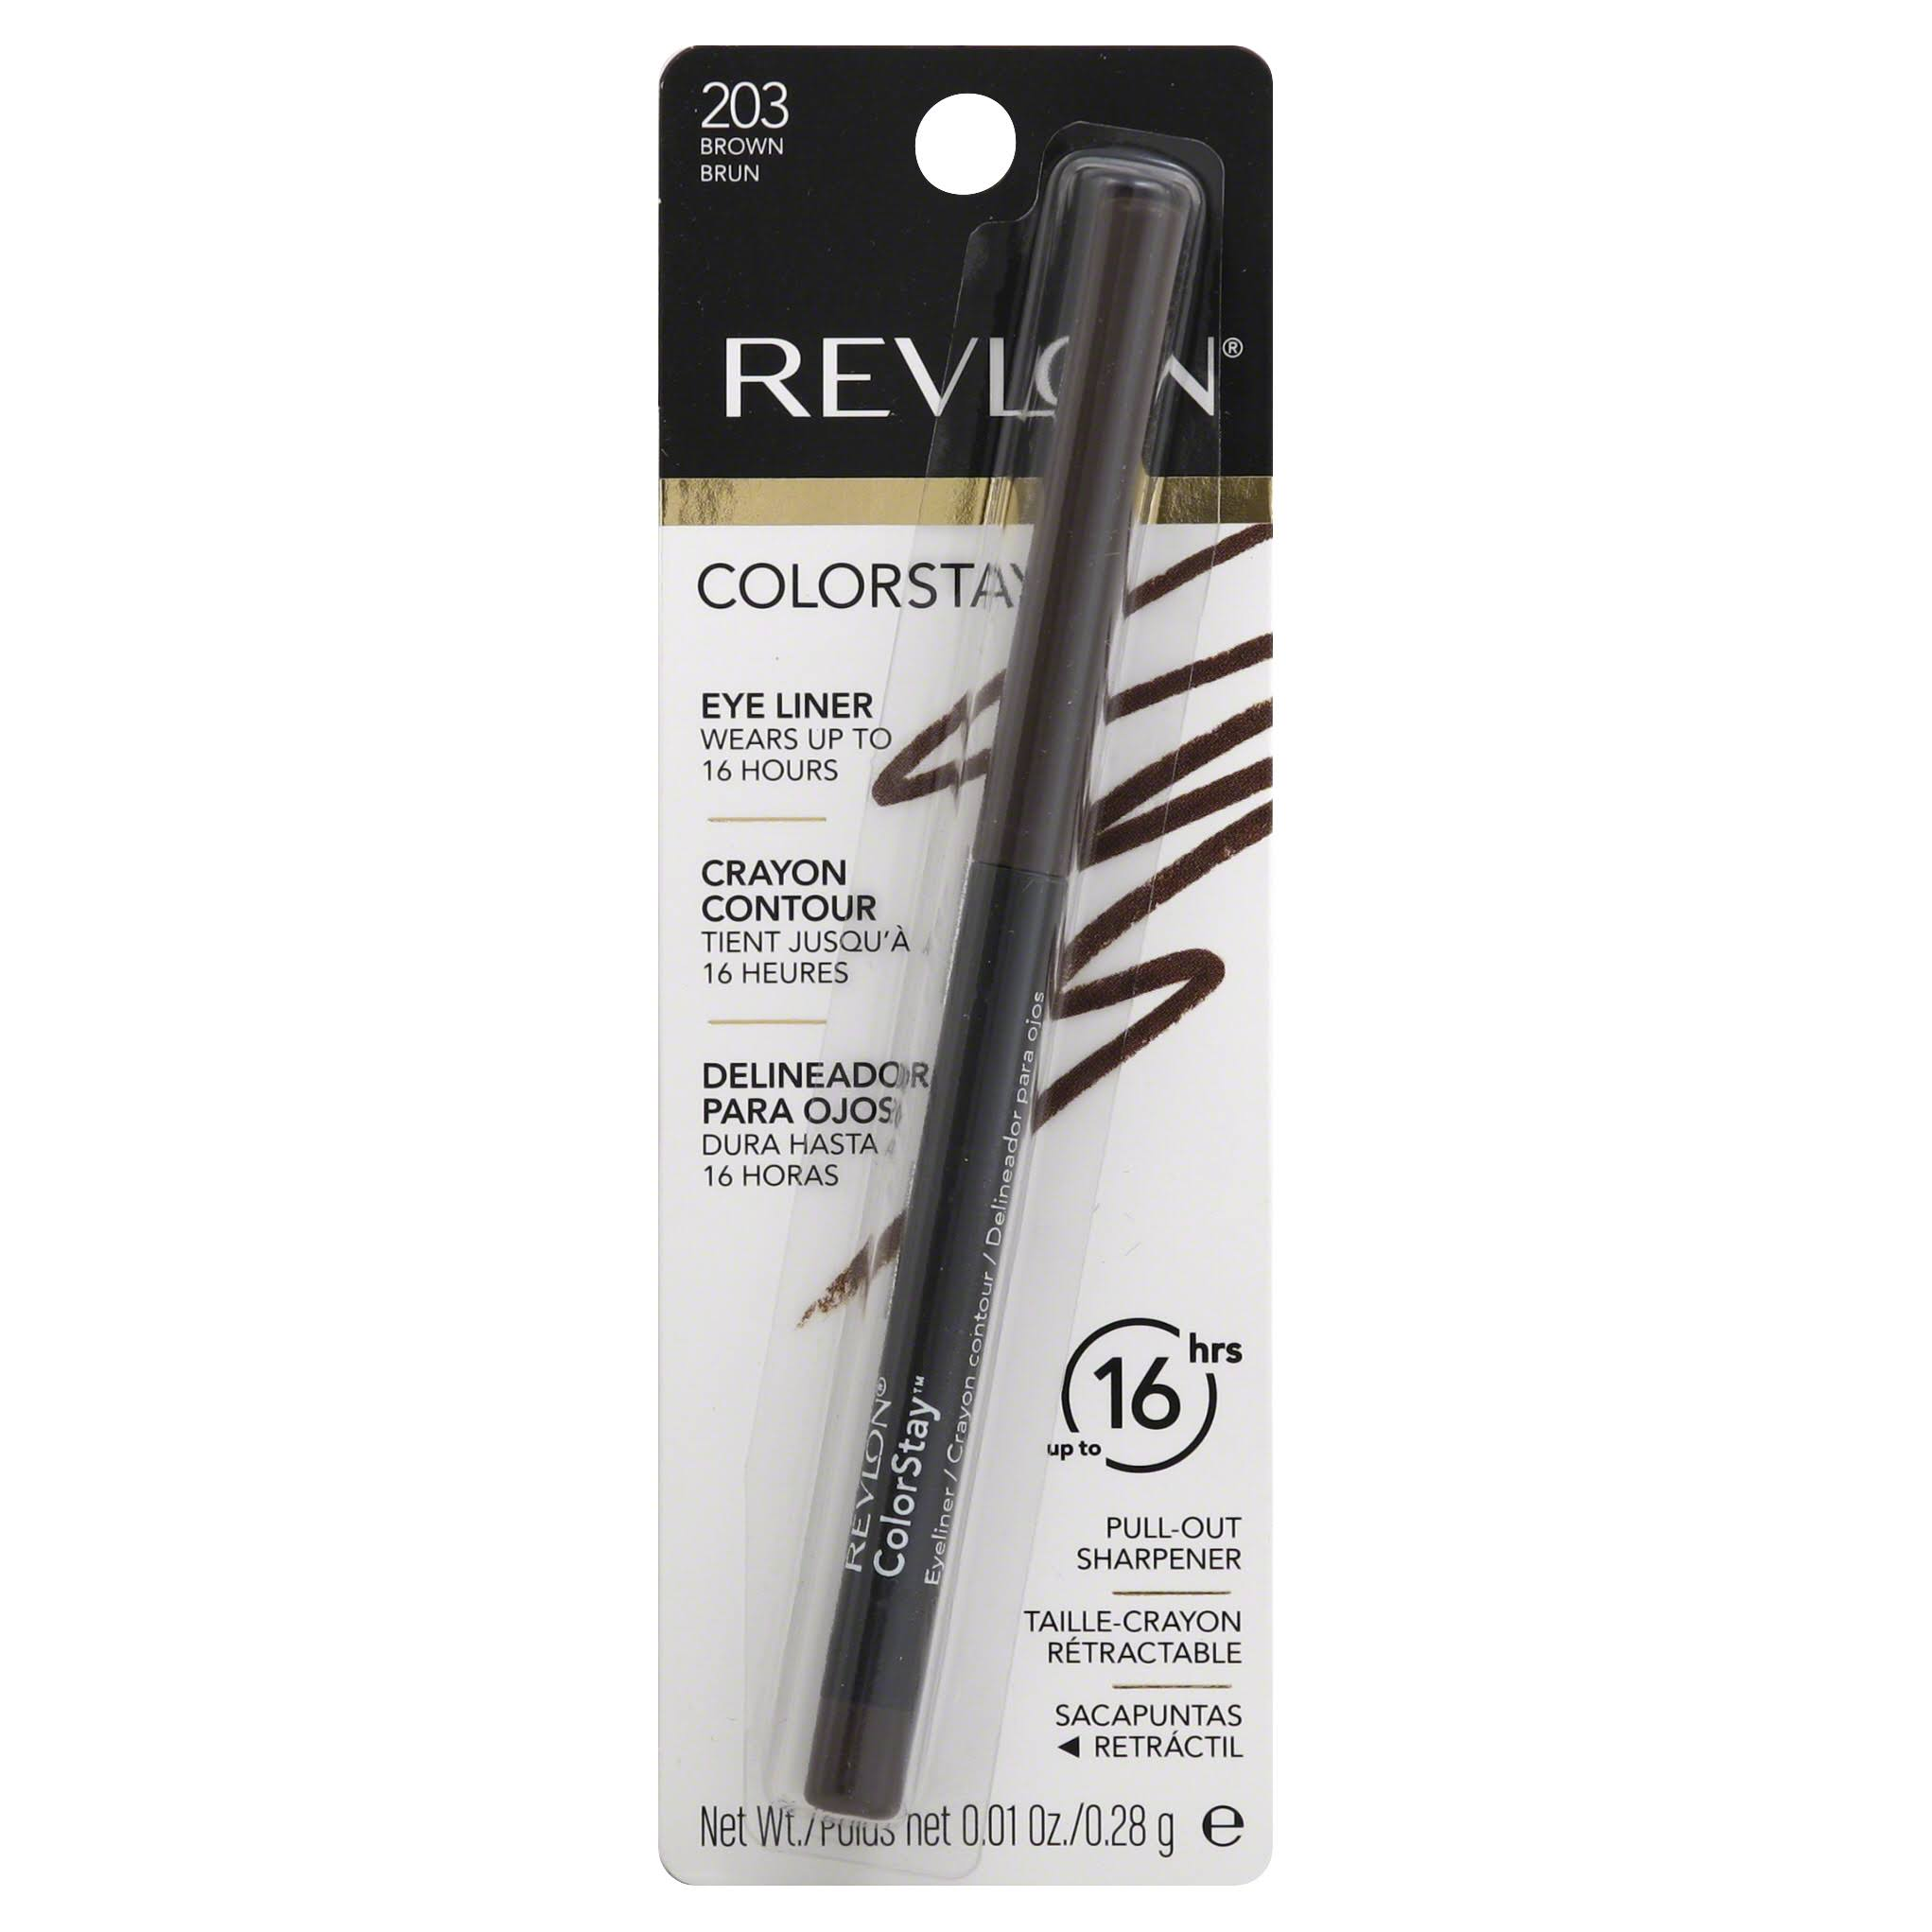 Revlon ColorStay Eyeliner With Sharpener - 203 Brown